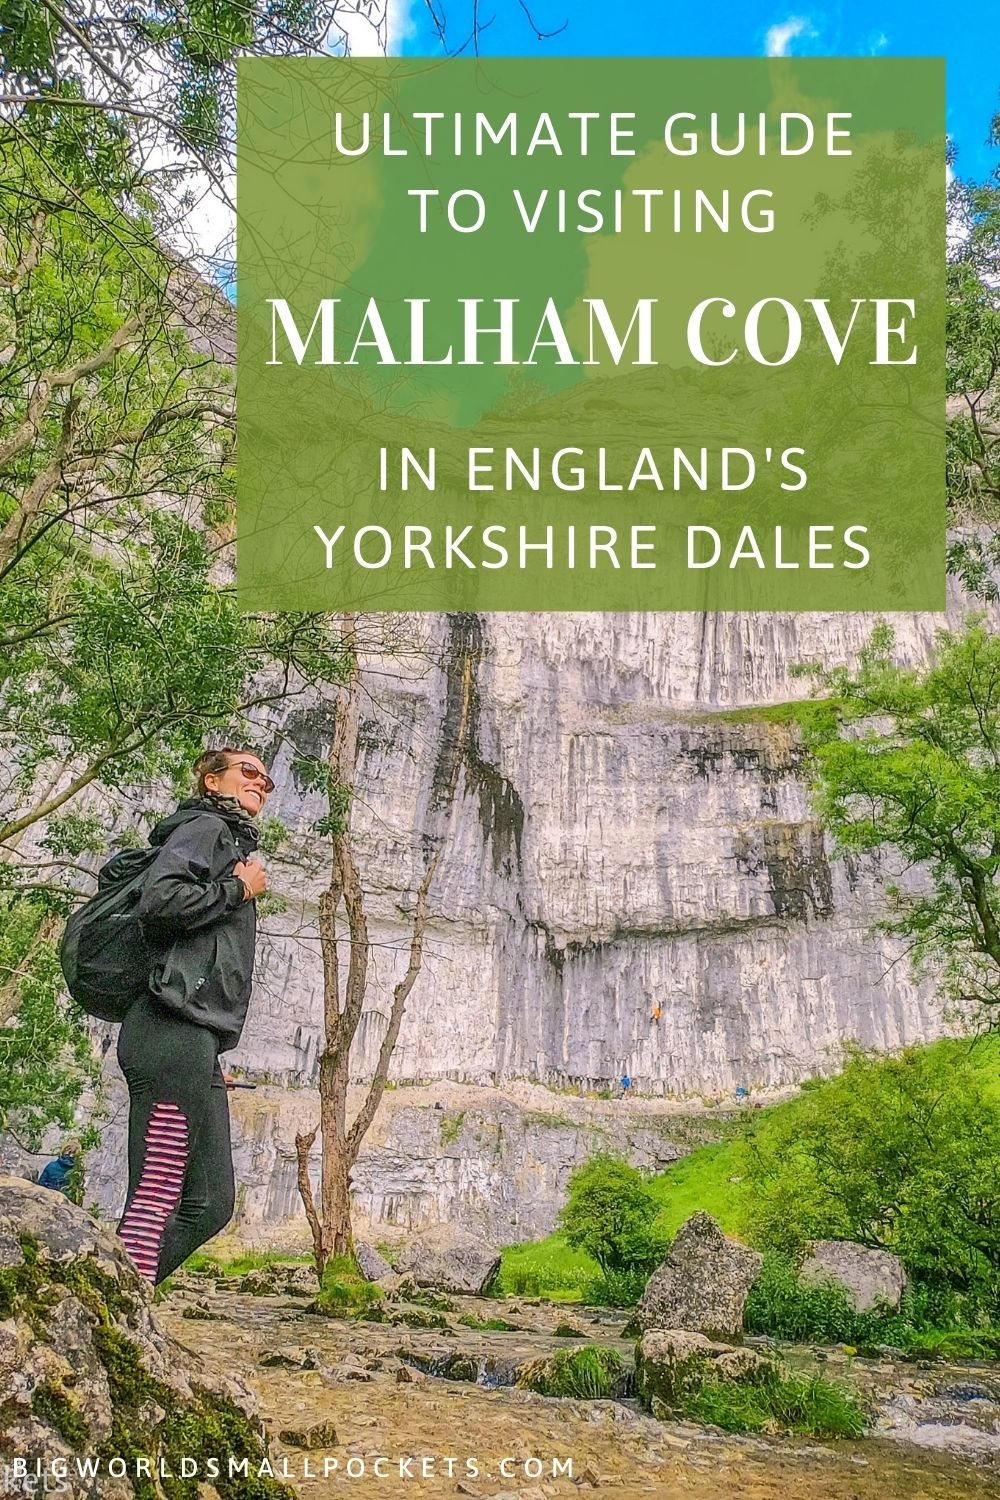 Complete Guide to Visiting Malham Cove in Yorkshire, England